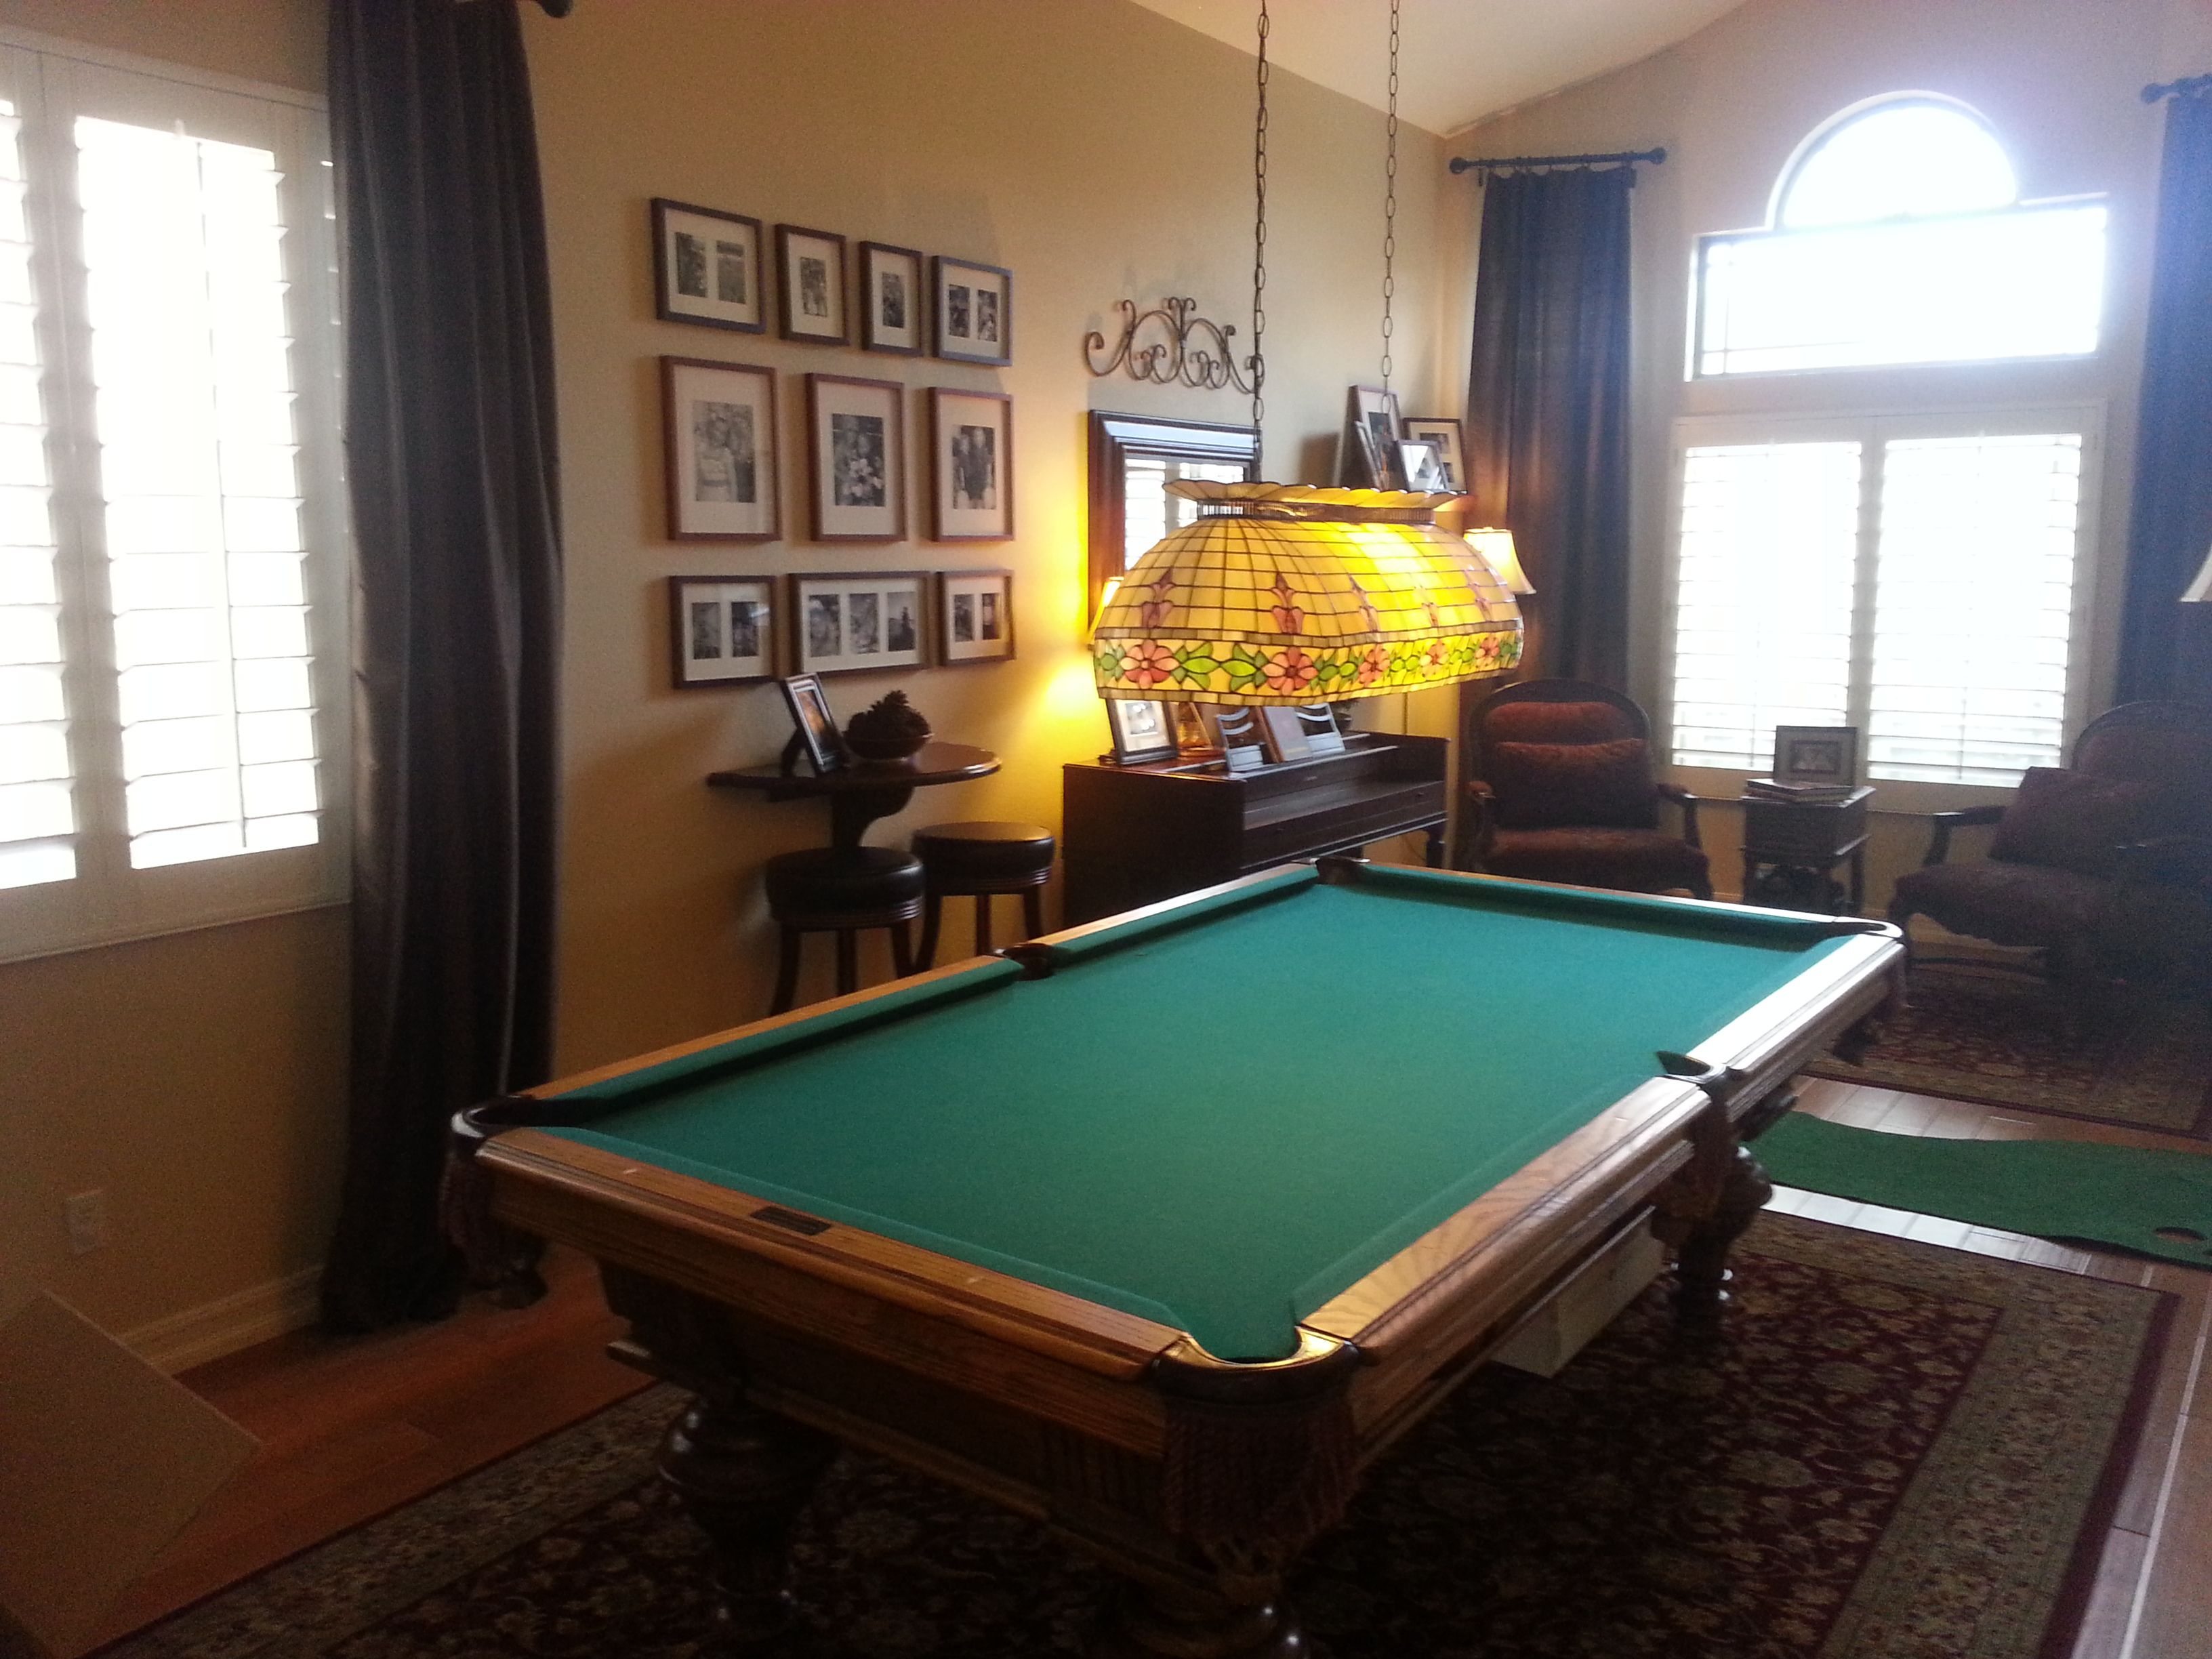 Especially when you're playing said games on a table that transforms from the pool table you're playing on to the dining table you're about to eat on. Pool Table Formal Living Room - Small House Interior Design